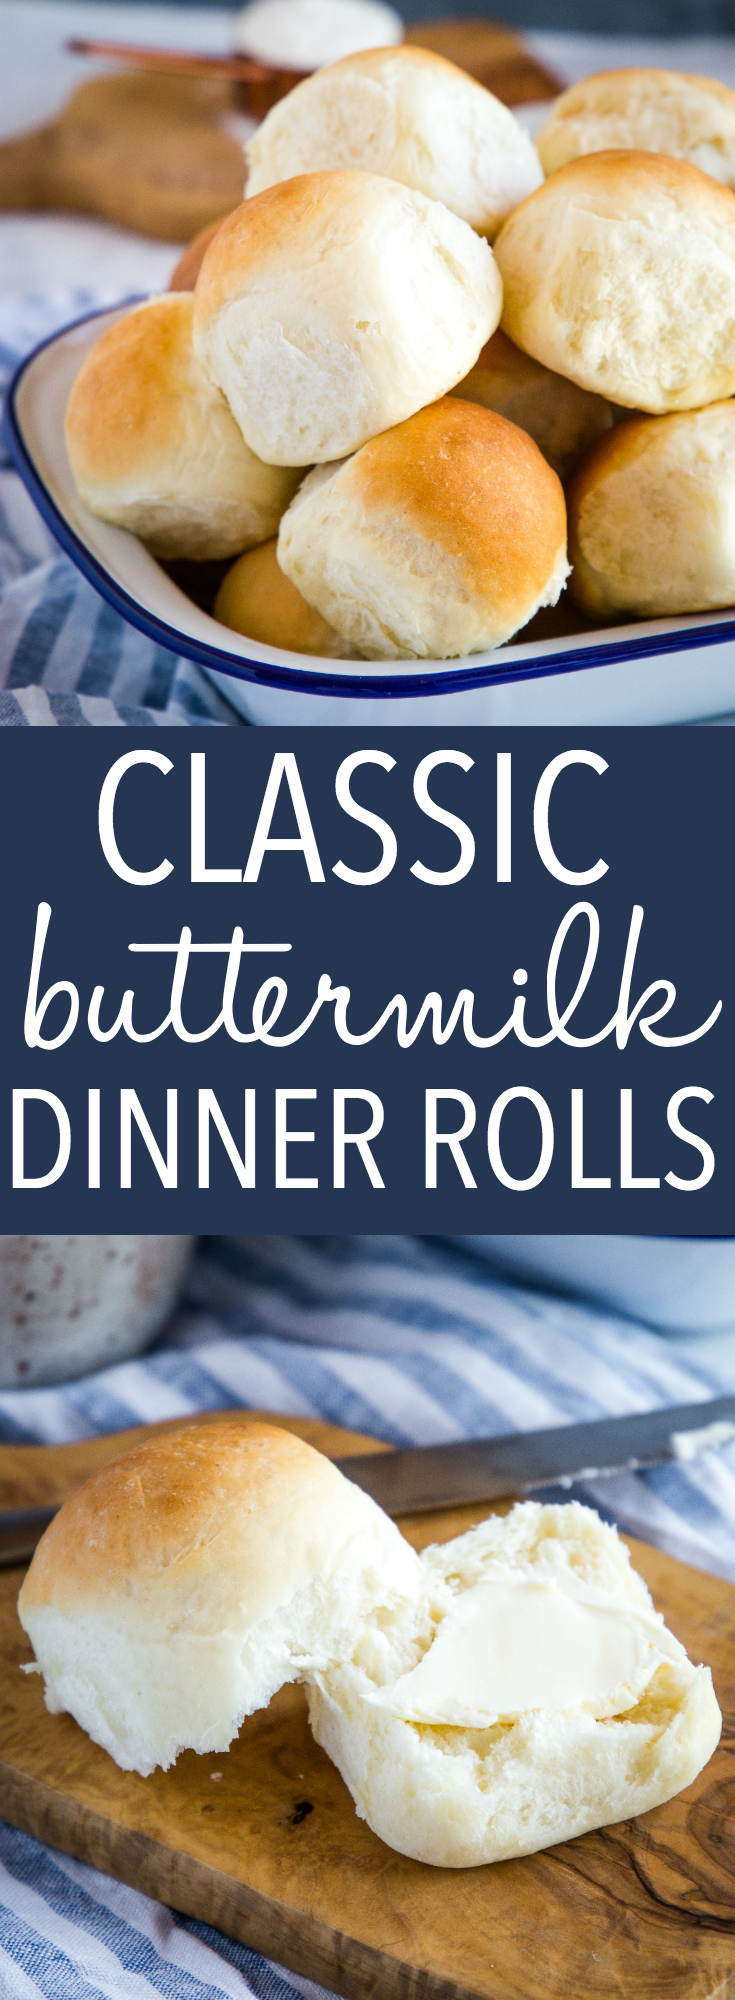 These Easy Homemade Classic Buttermilk Buns are the perfect tender dinner roll! A simple buttermilk dough baked to perfection - makes the perfect addition to your holiday dinner! Recipe from thebusybaker.ca! #dinnerrolls #buns #sundaysupper #christmas #thanksgiving #baking #dinner #holidays via @busybakerblog